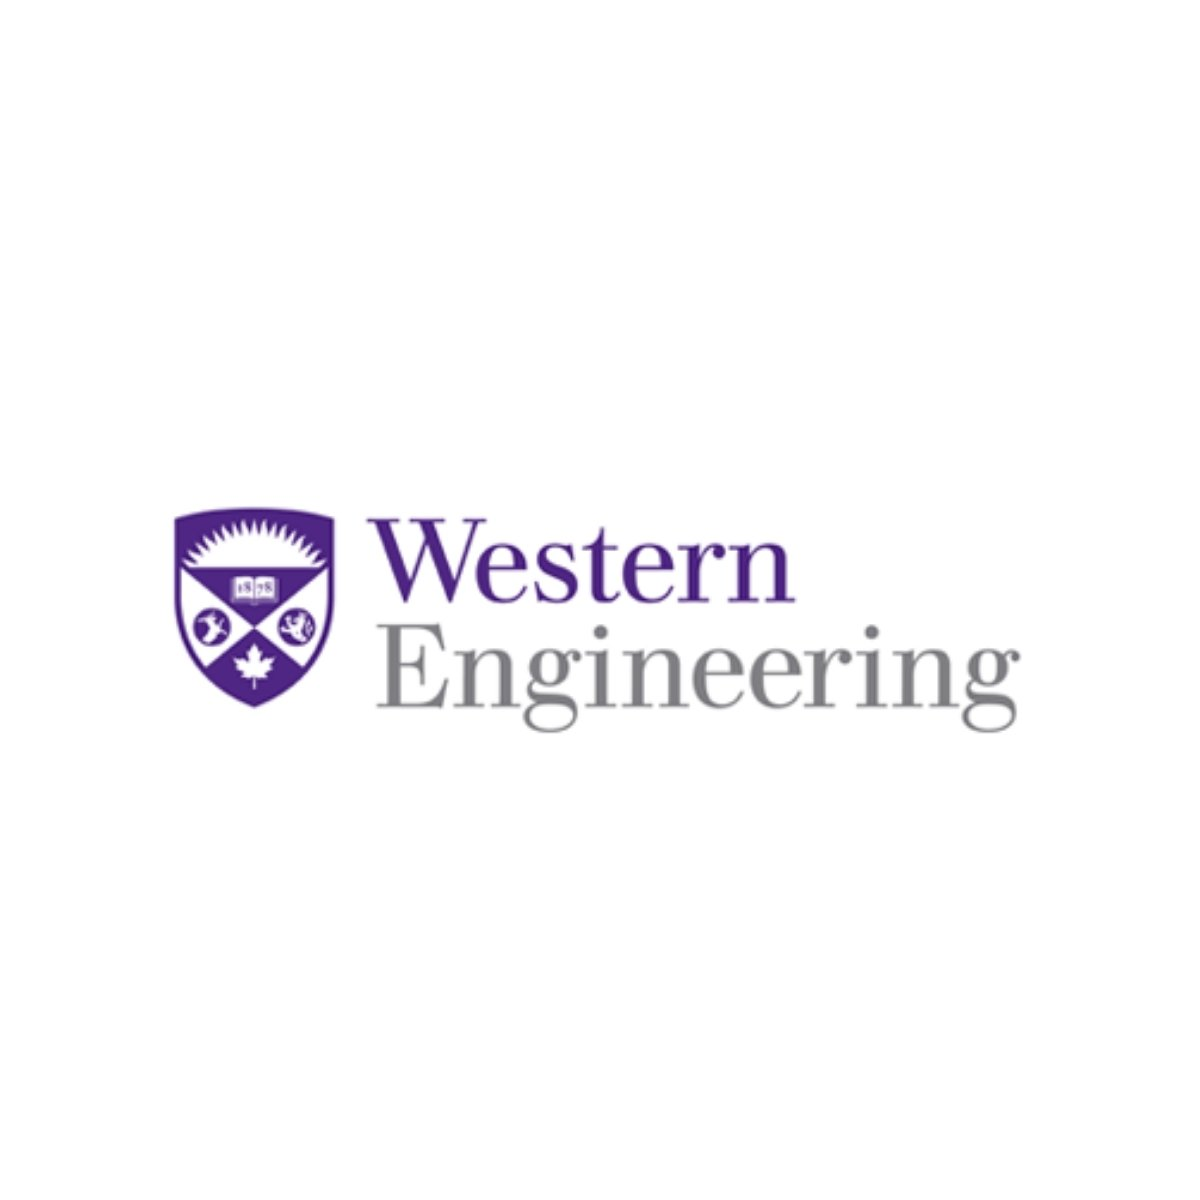 Western engineering logo